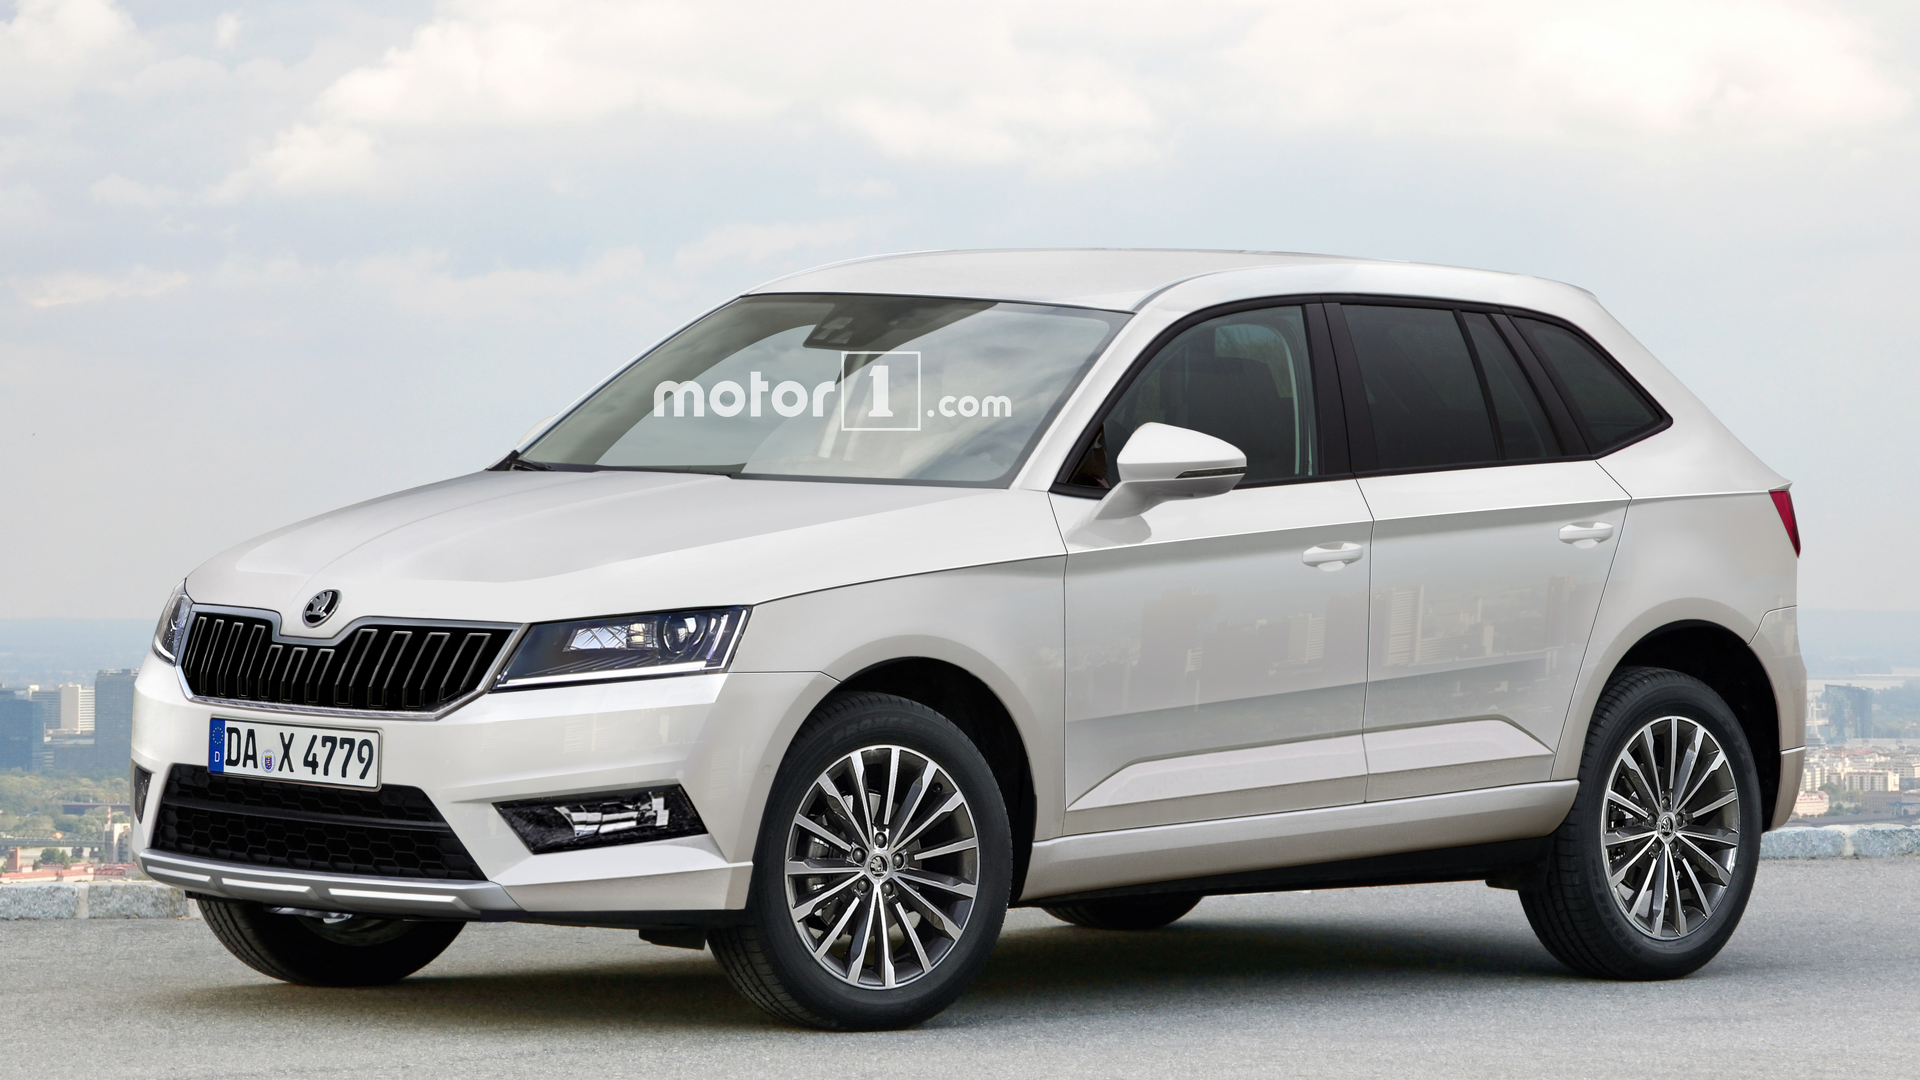 Skoda yeti 2017 review release date new automotive trends skoda - 2017 Skoda Yeti Envisioned With Vw Tiguan Genes